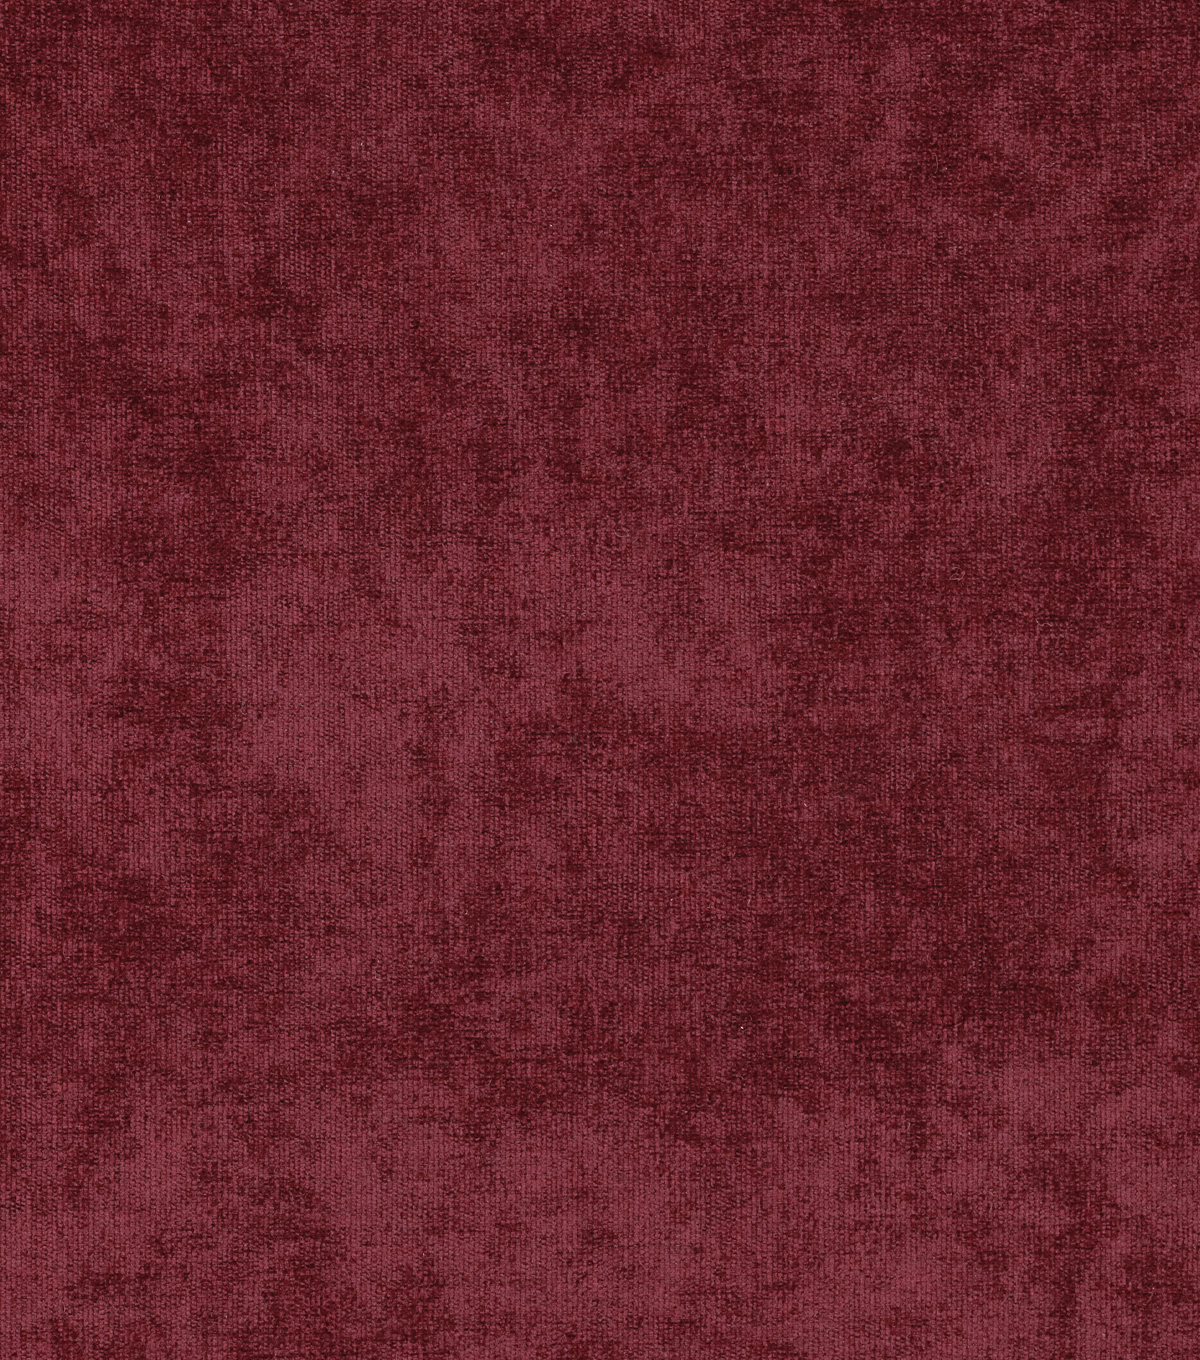 Crypton Lightweight Decor Fabric 54\u0022-Shelby Cabarnet